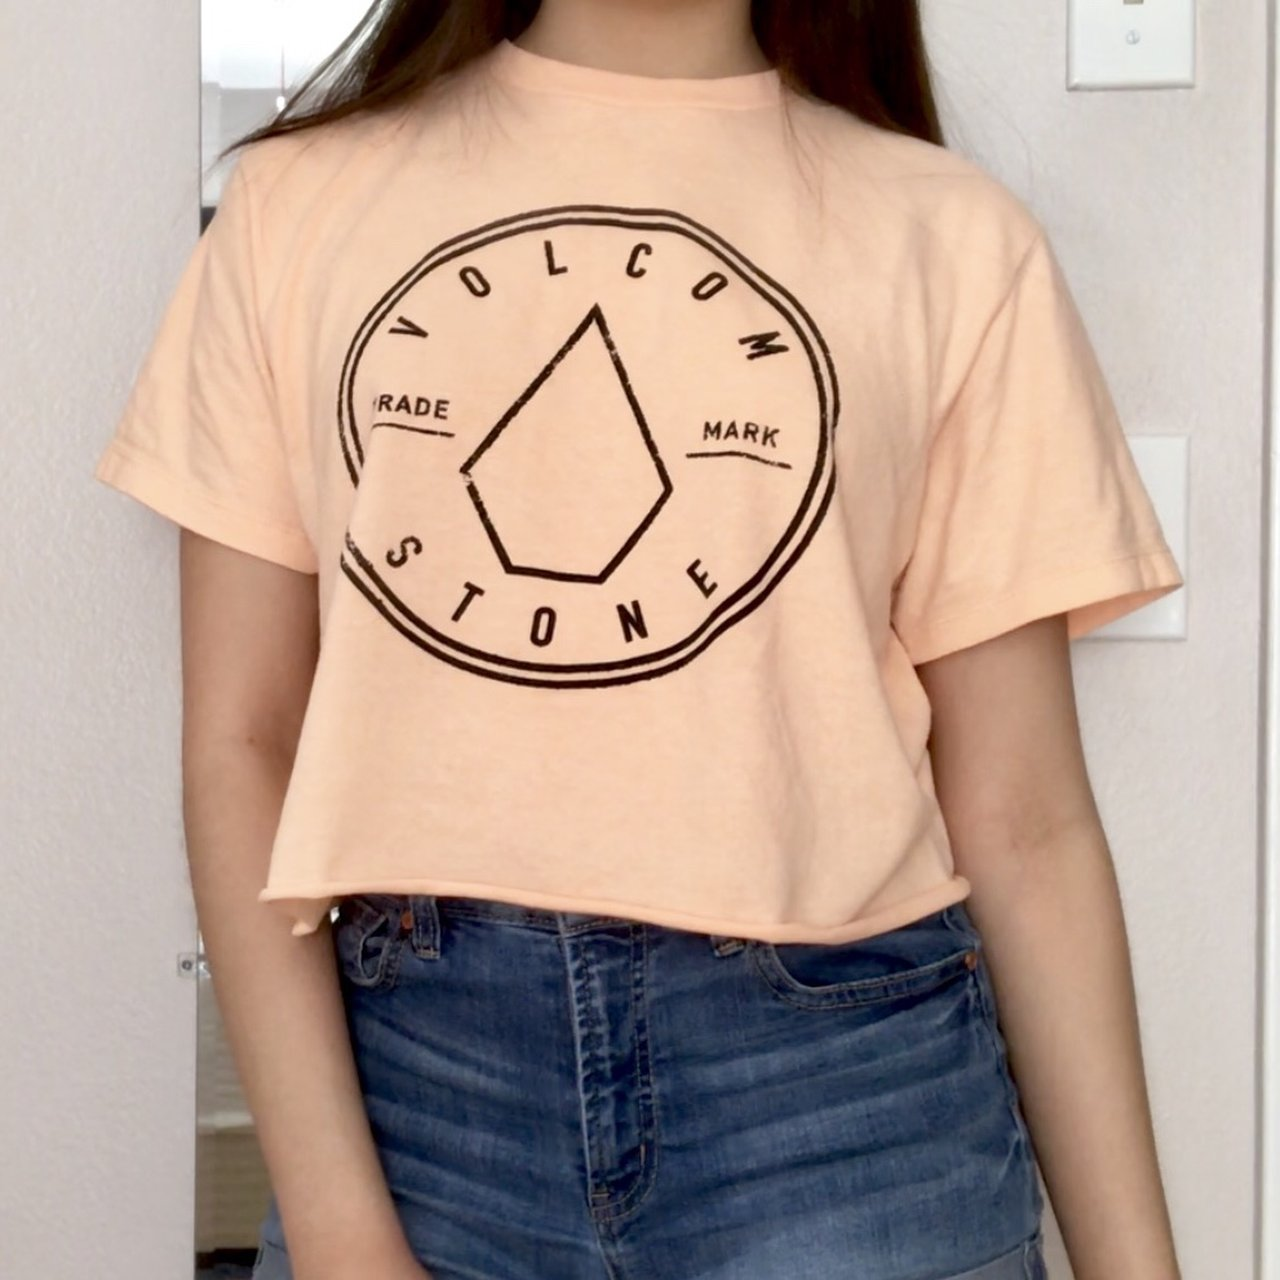 1e598ca3c41 peachy highlighter orange cropped volcom